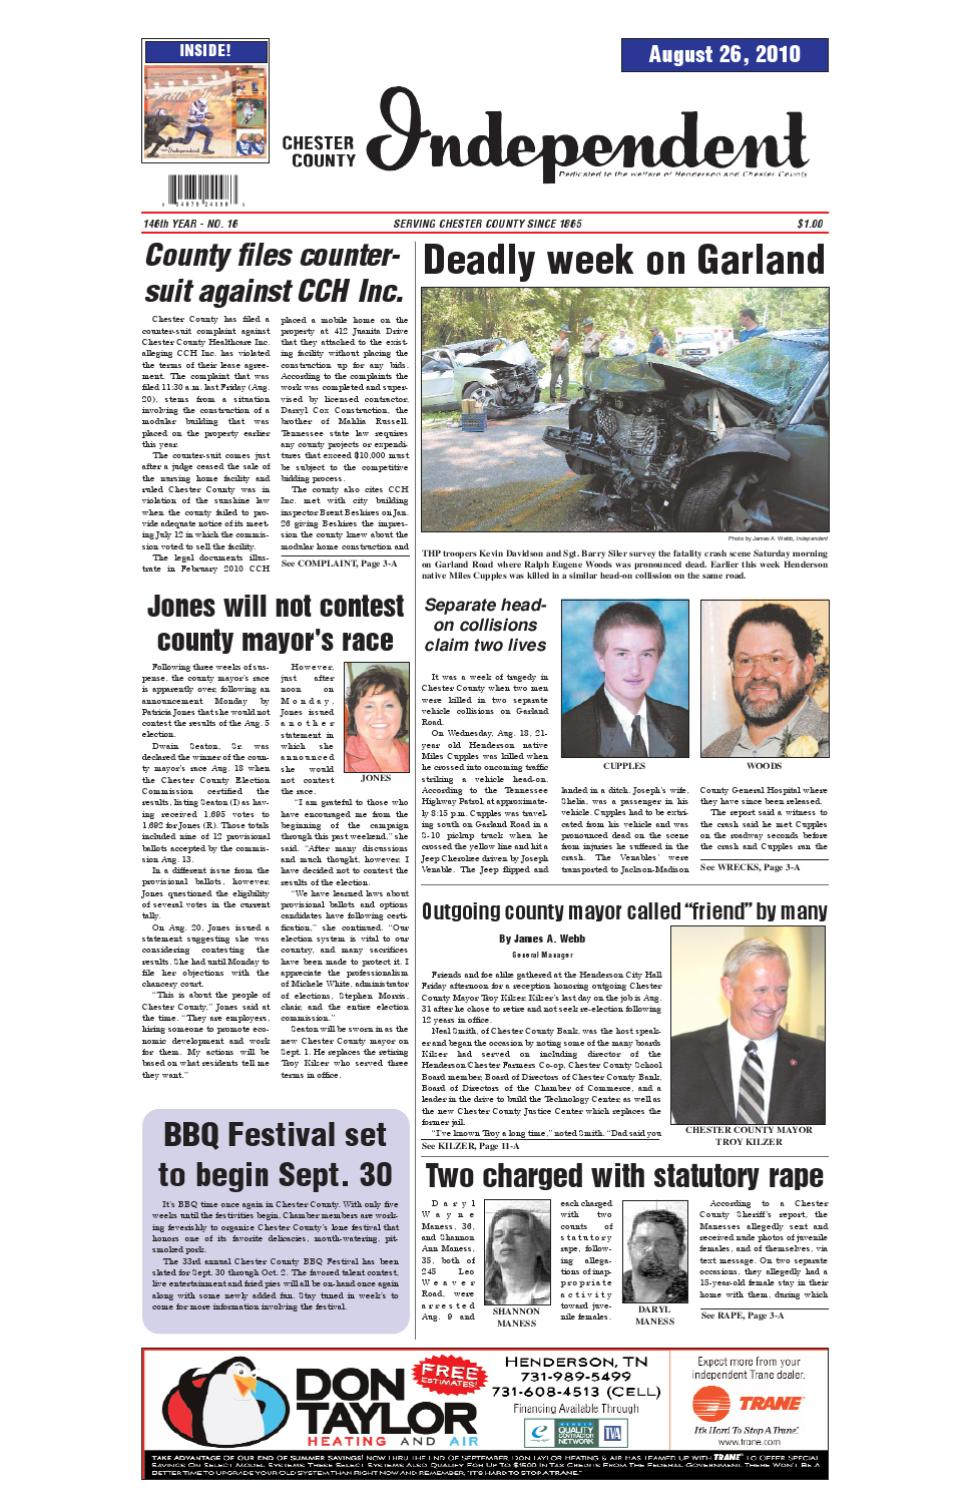 Tennessee chester county enville - Chester County Independent 08 26 10 By Chester County Independent Issuu